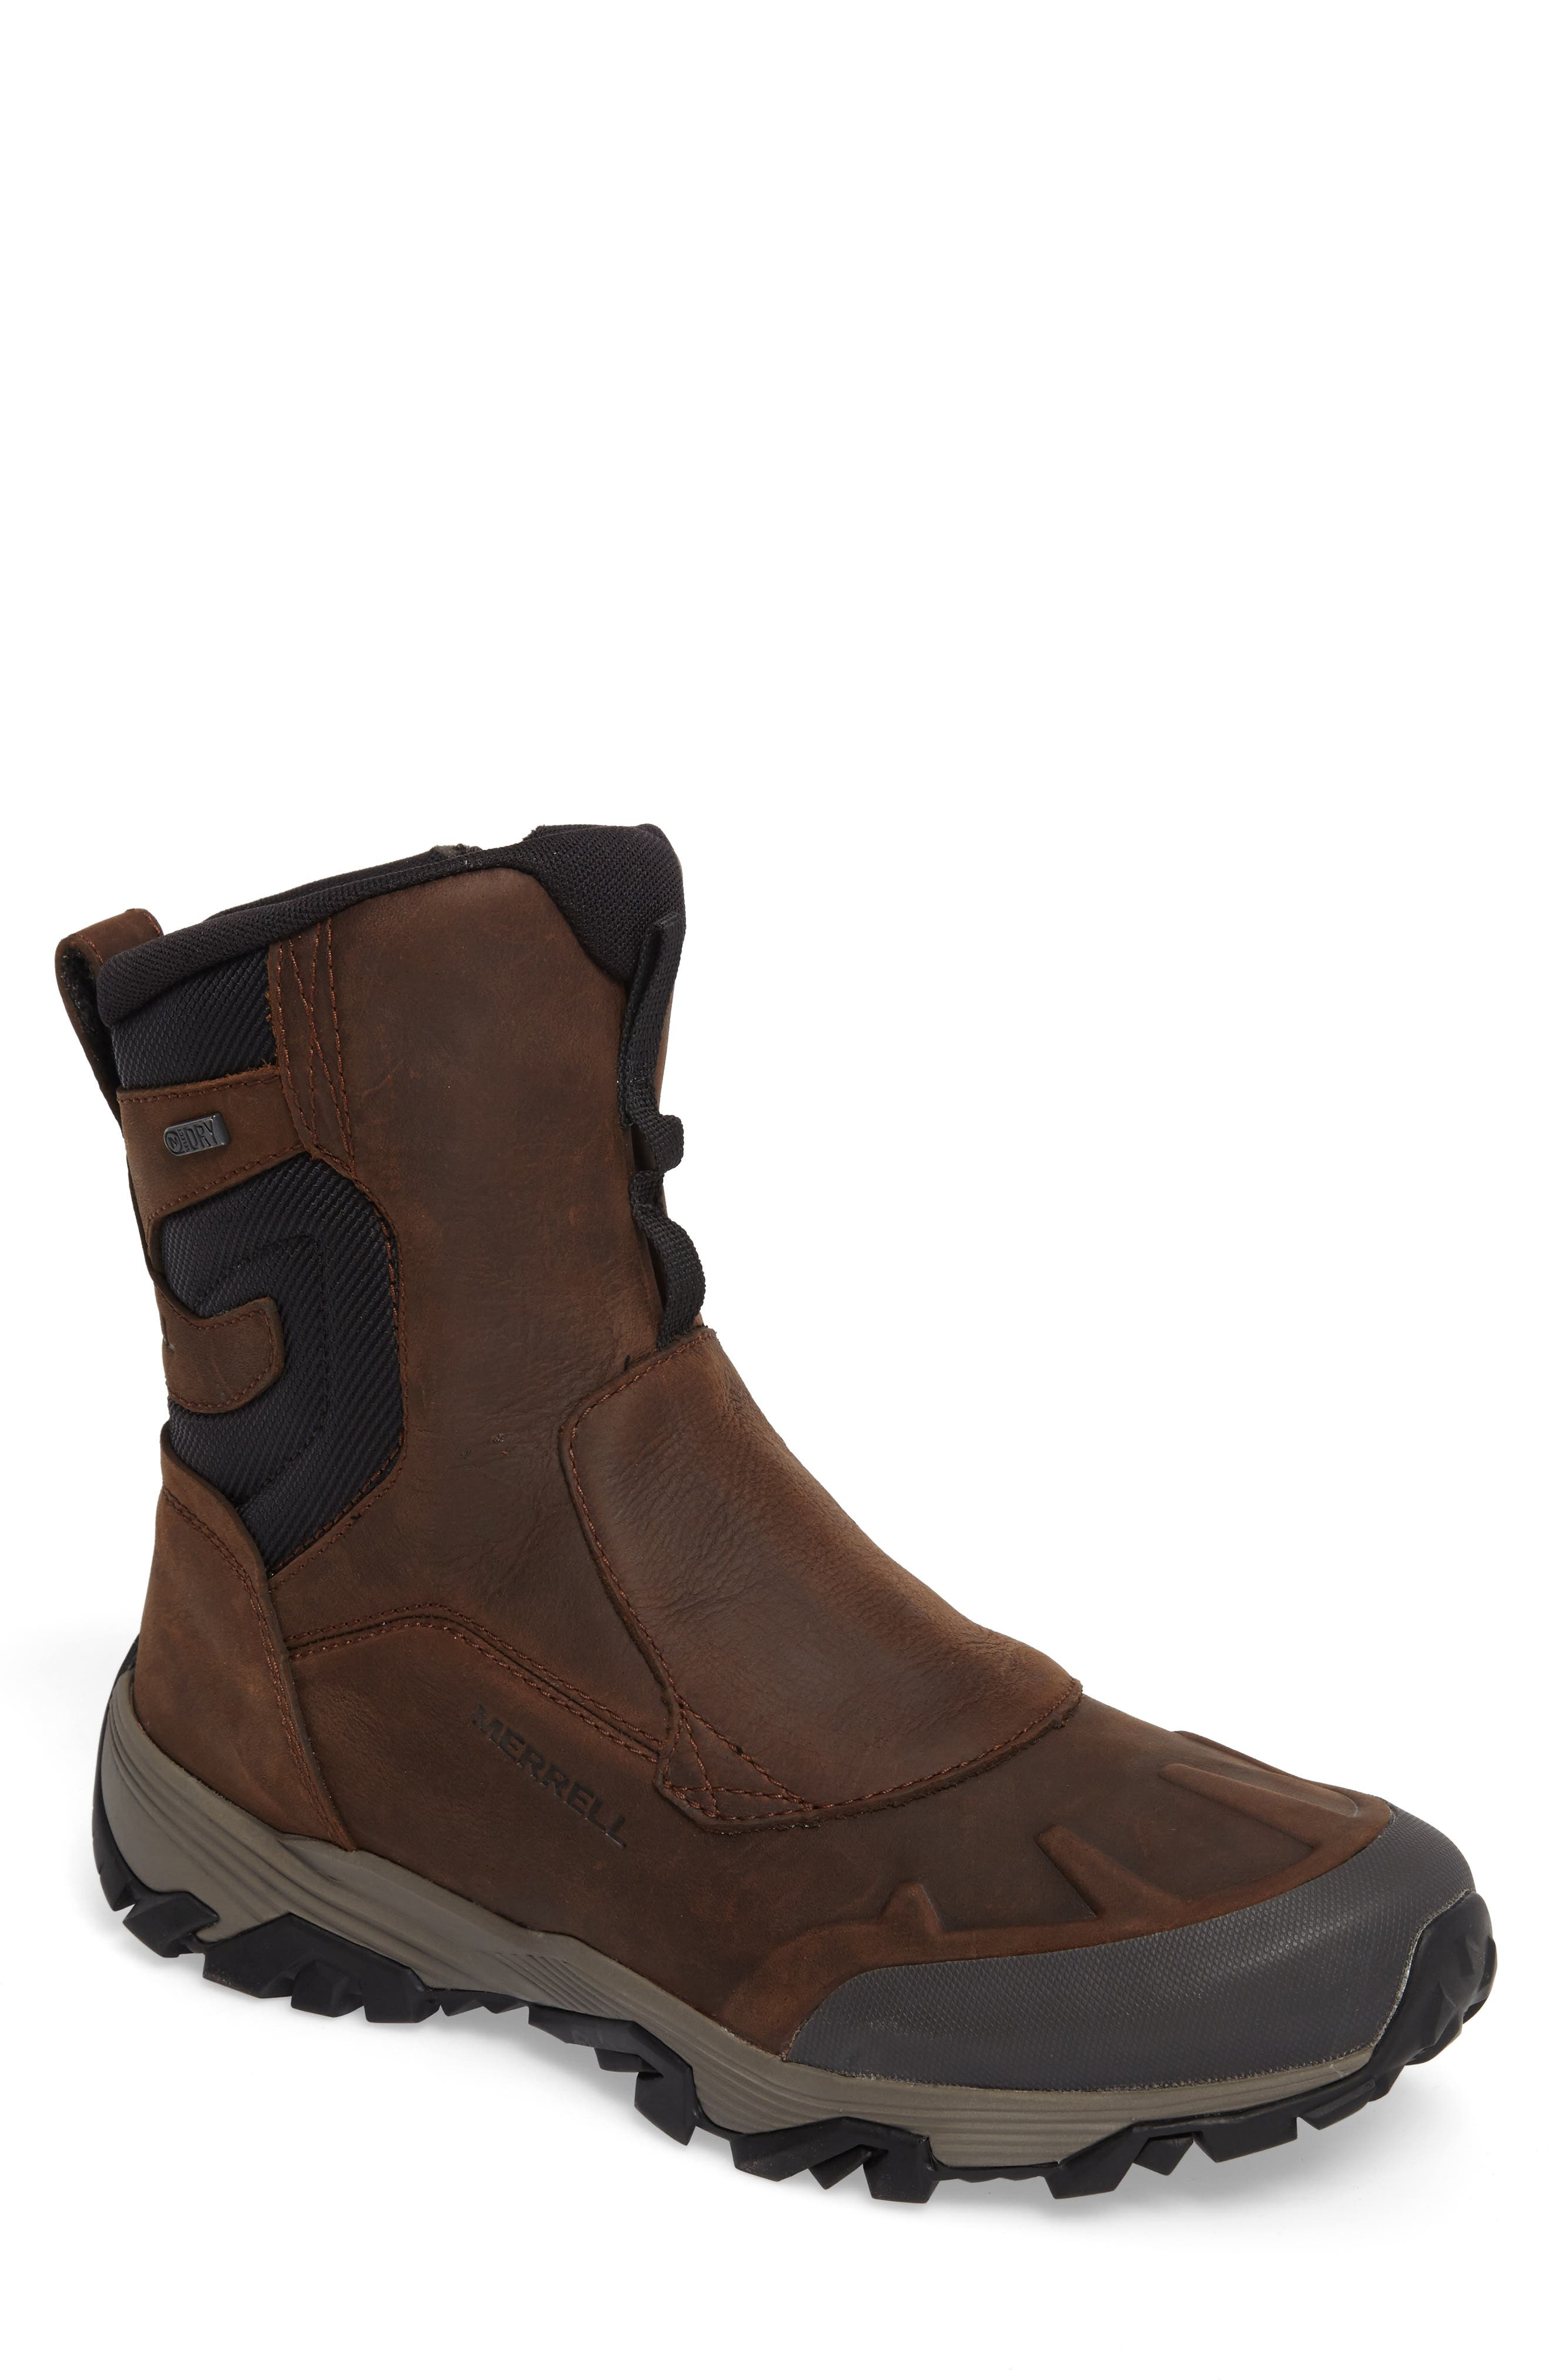 Alternate Image 1 Selected - Merrell Cold Pack Ice Boot (Men)